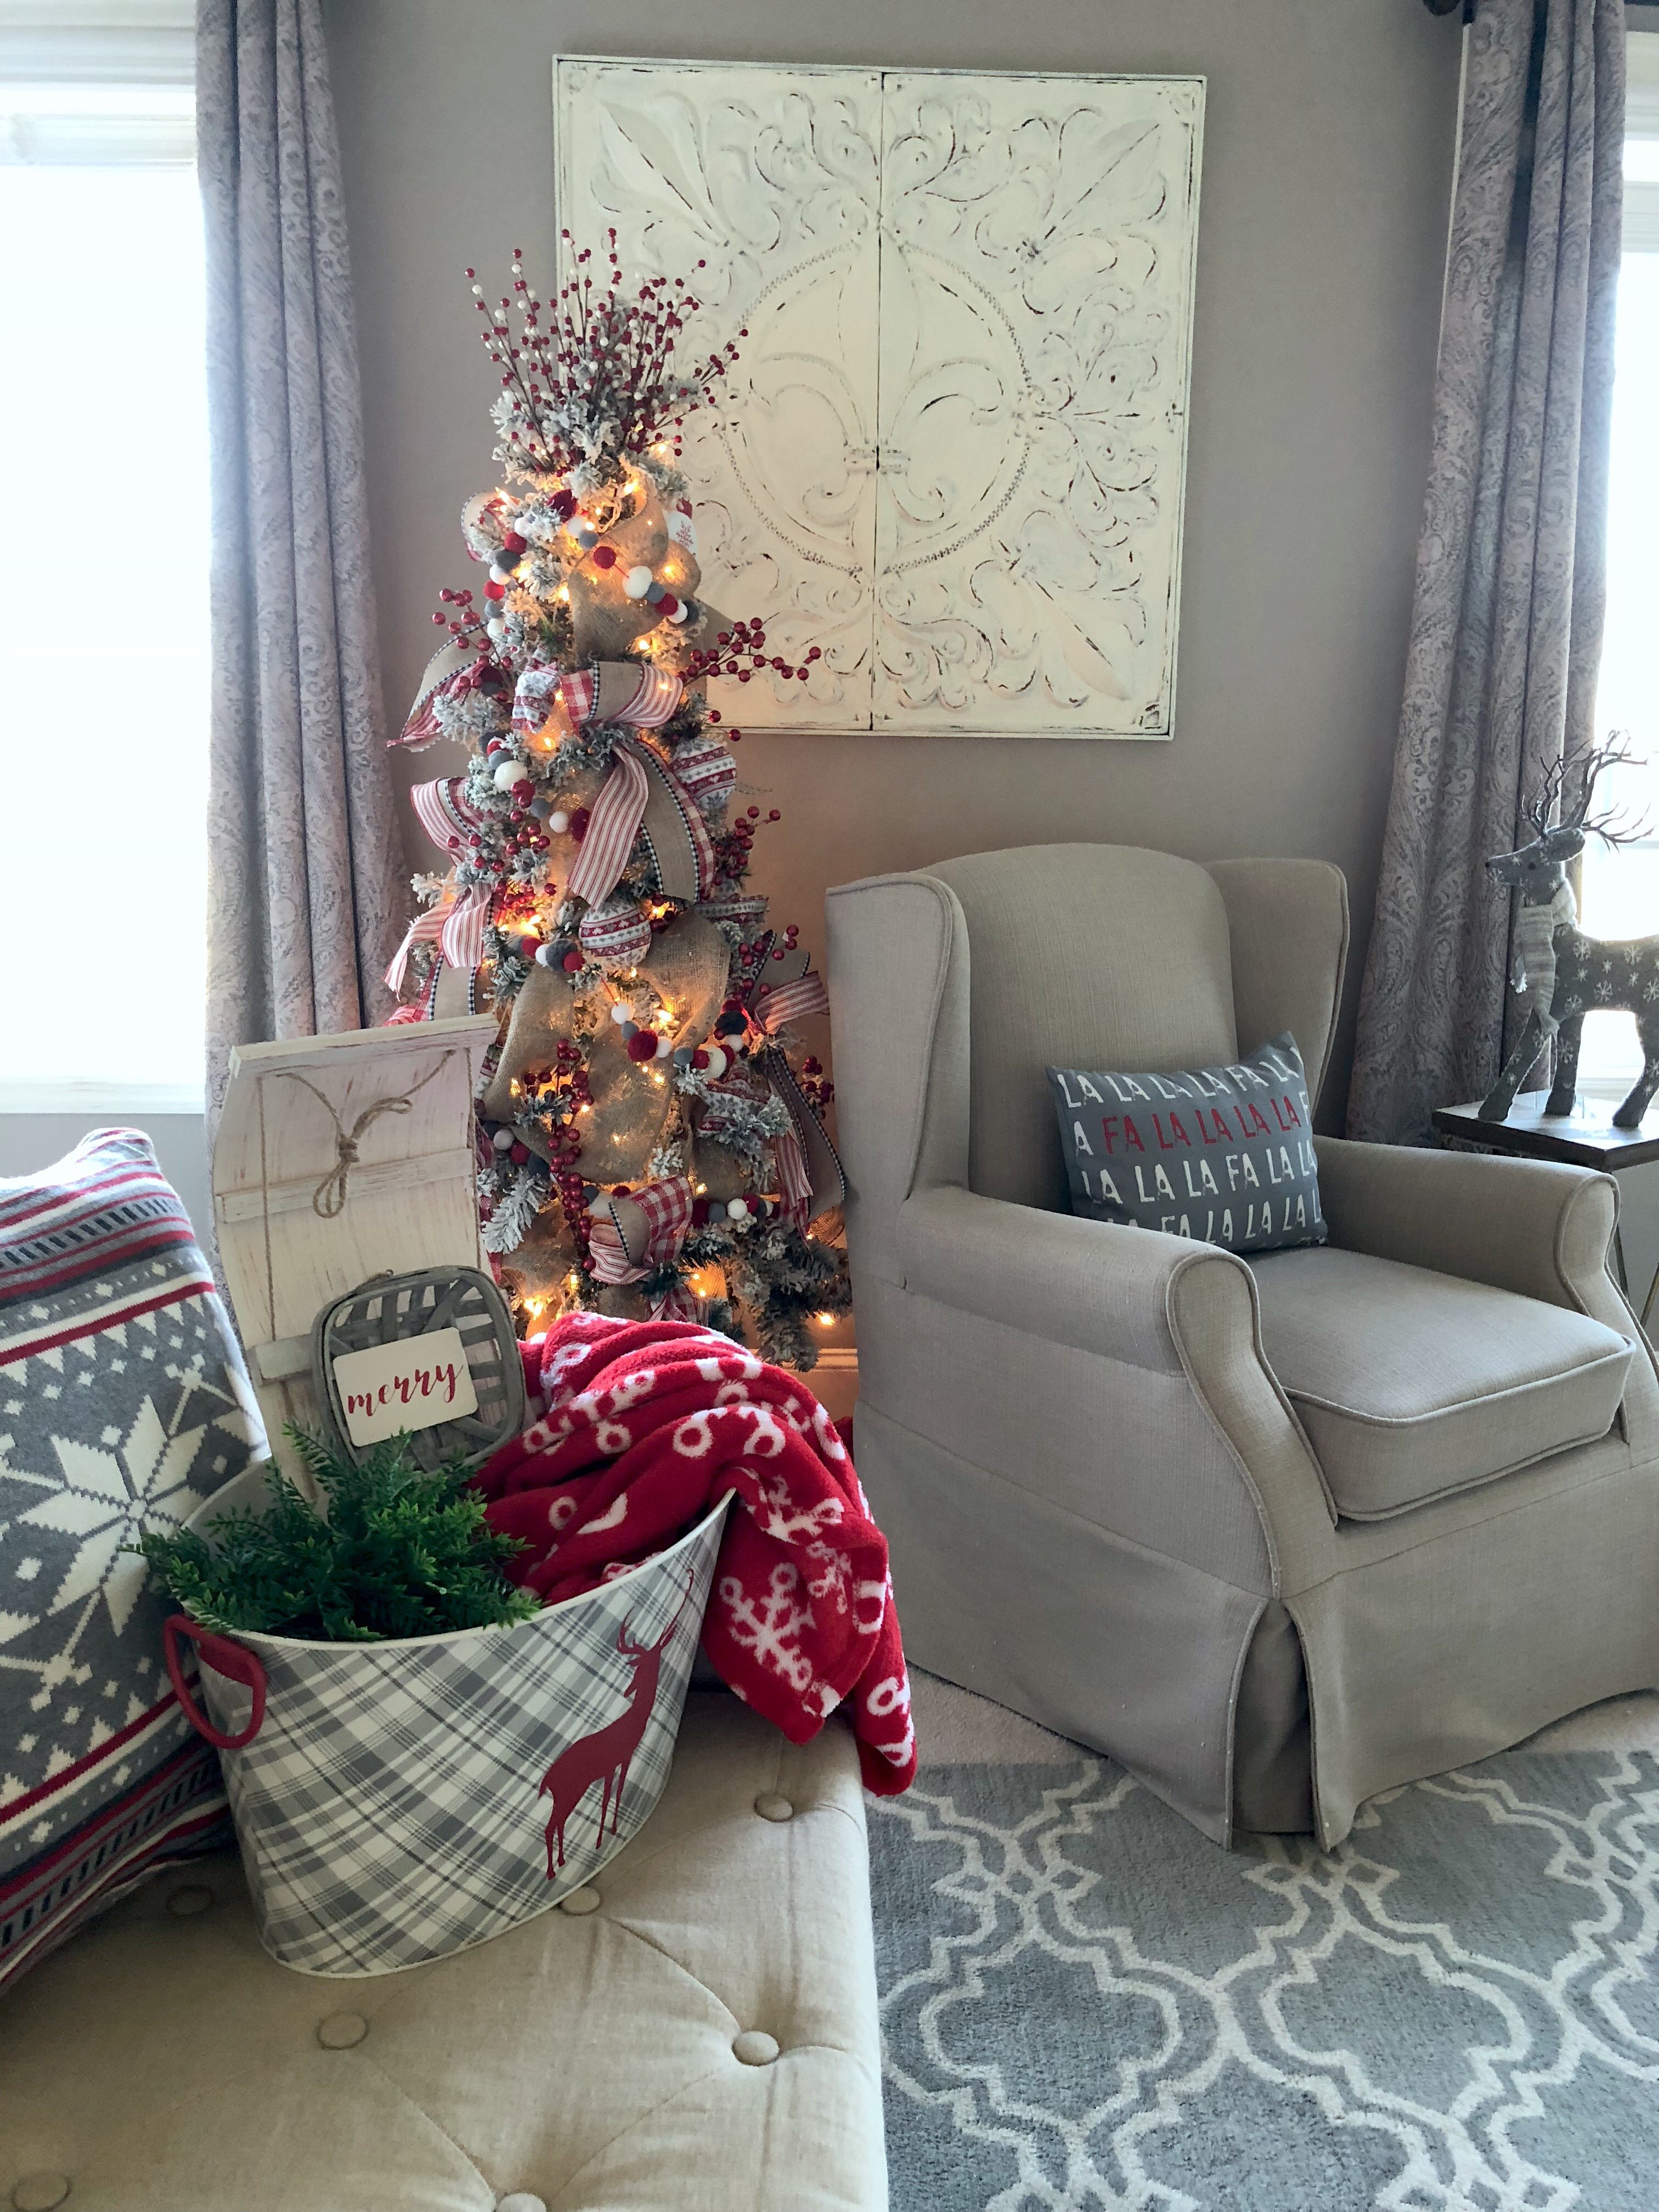 4 ideas on how to add Christmas decor to your master bedroom, tree, pillows, throw blanket and more!